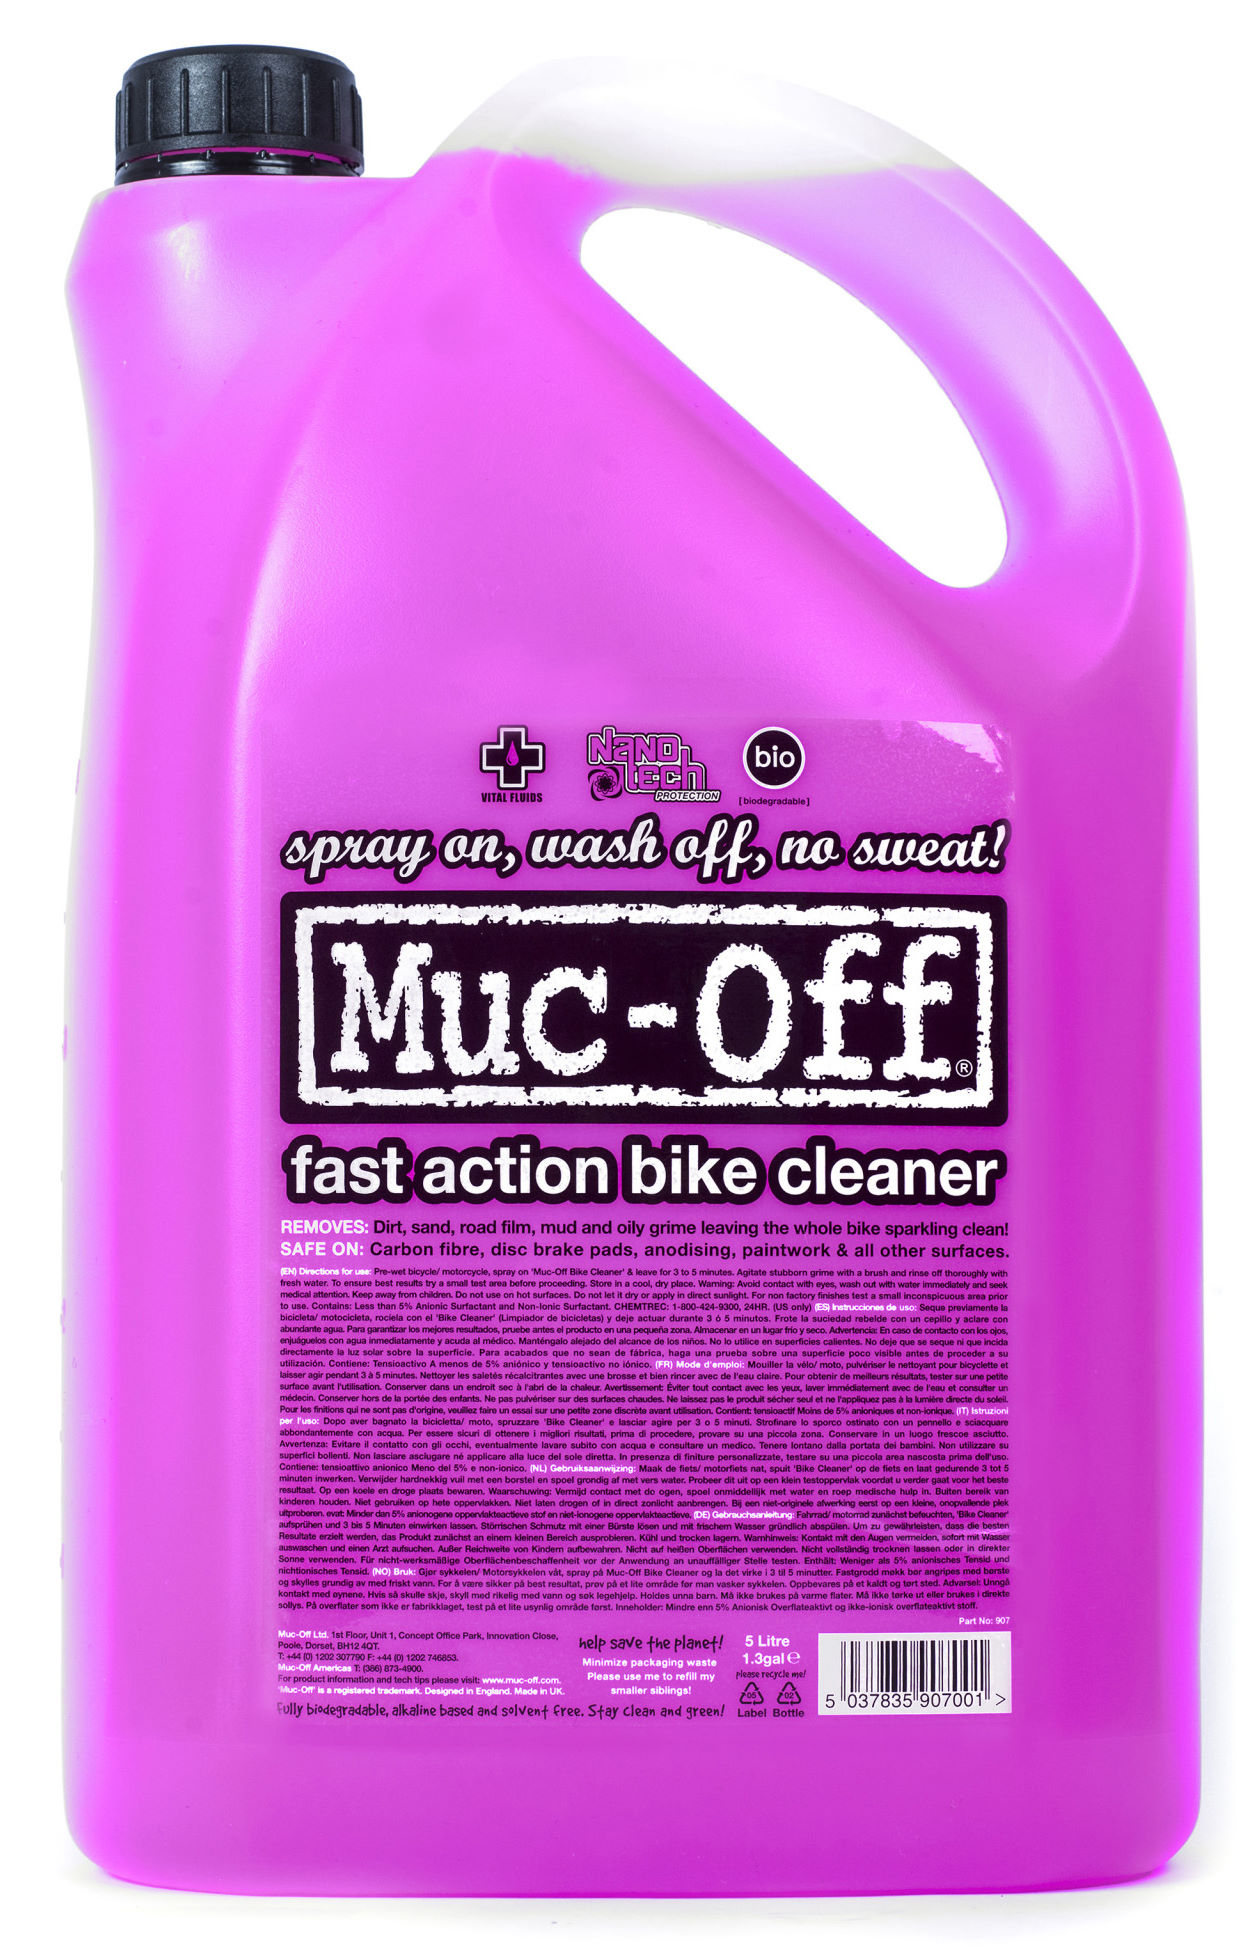 Muc-Off | Chain Reaction Cycles